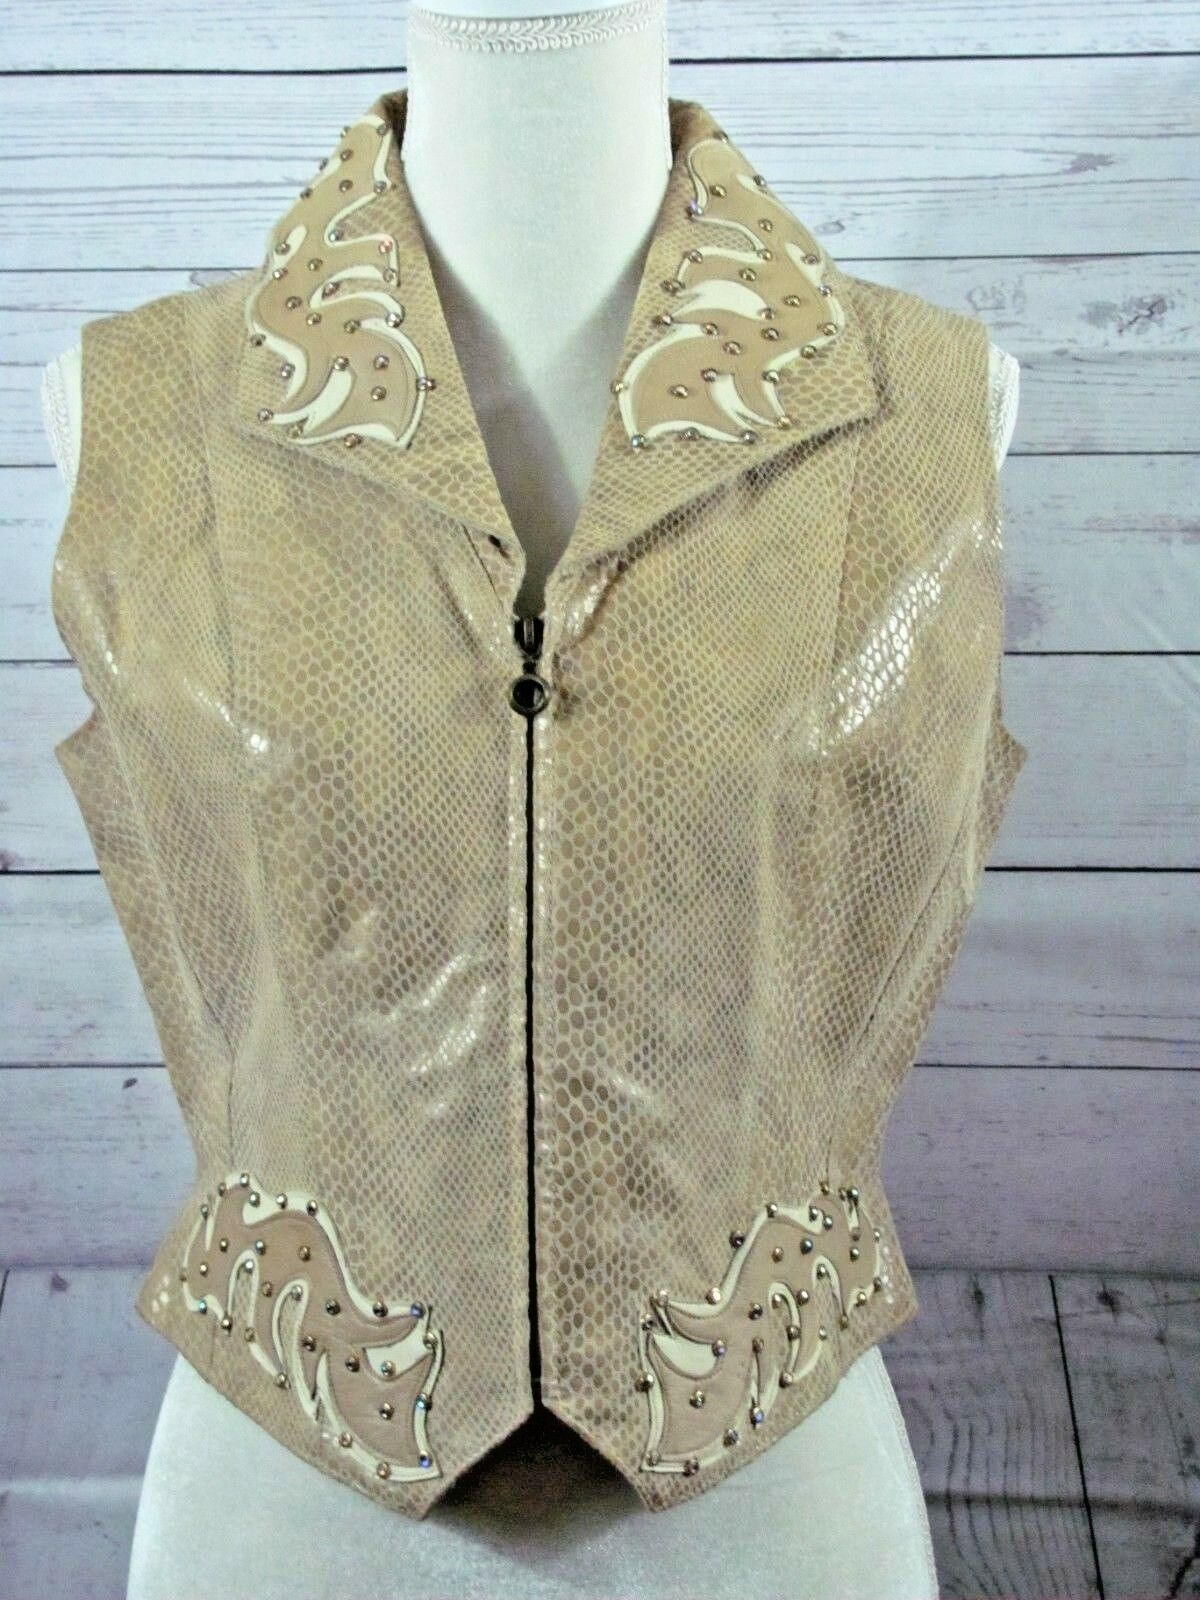 Paolo Paolo Paolo Santini Vest Leather Womens 10 Snake Print Leather Cutouts Jewels Tan be6ecb